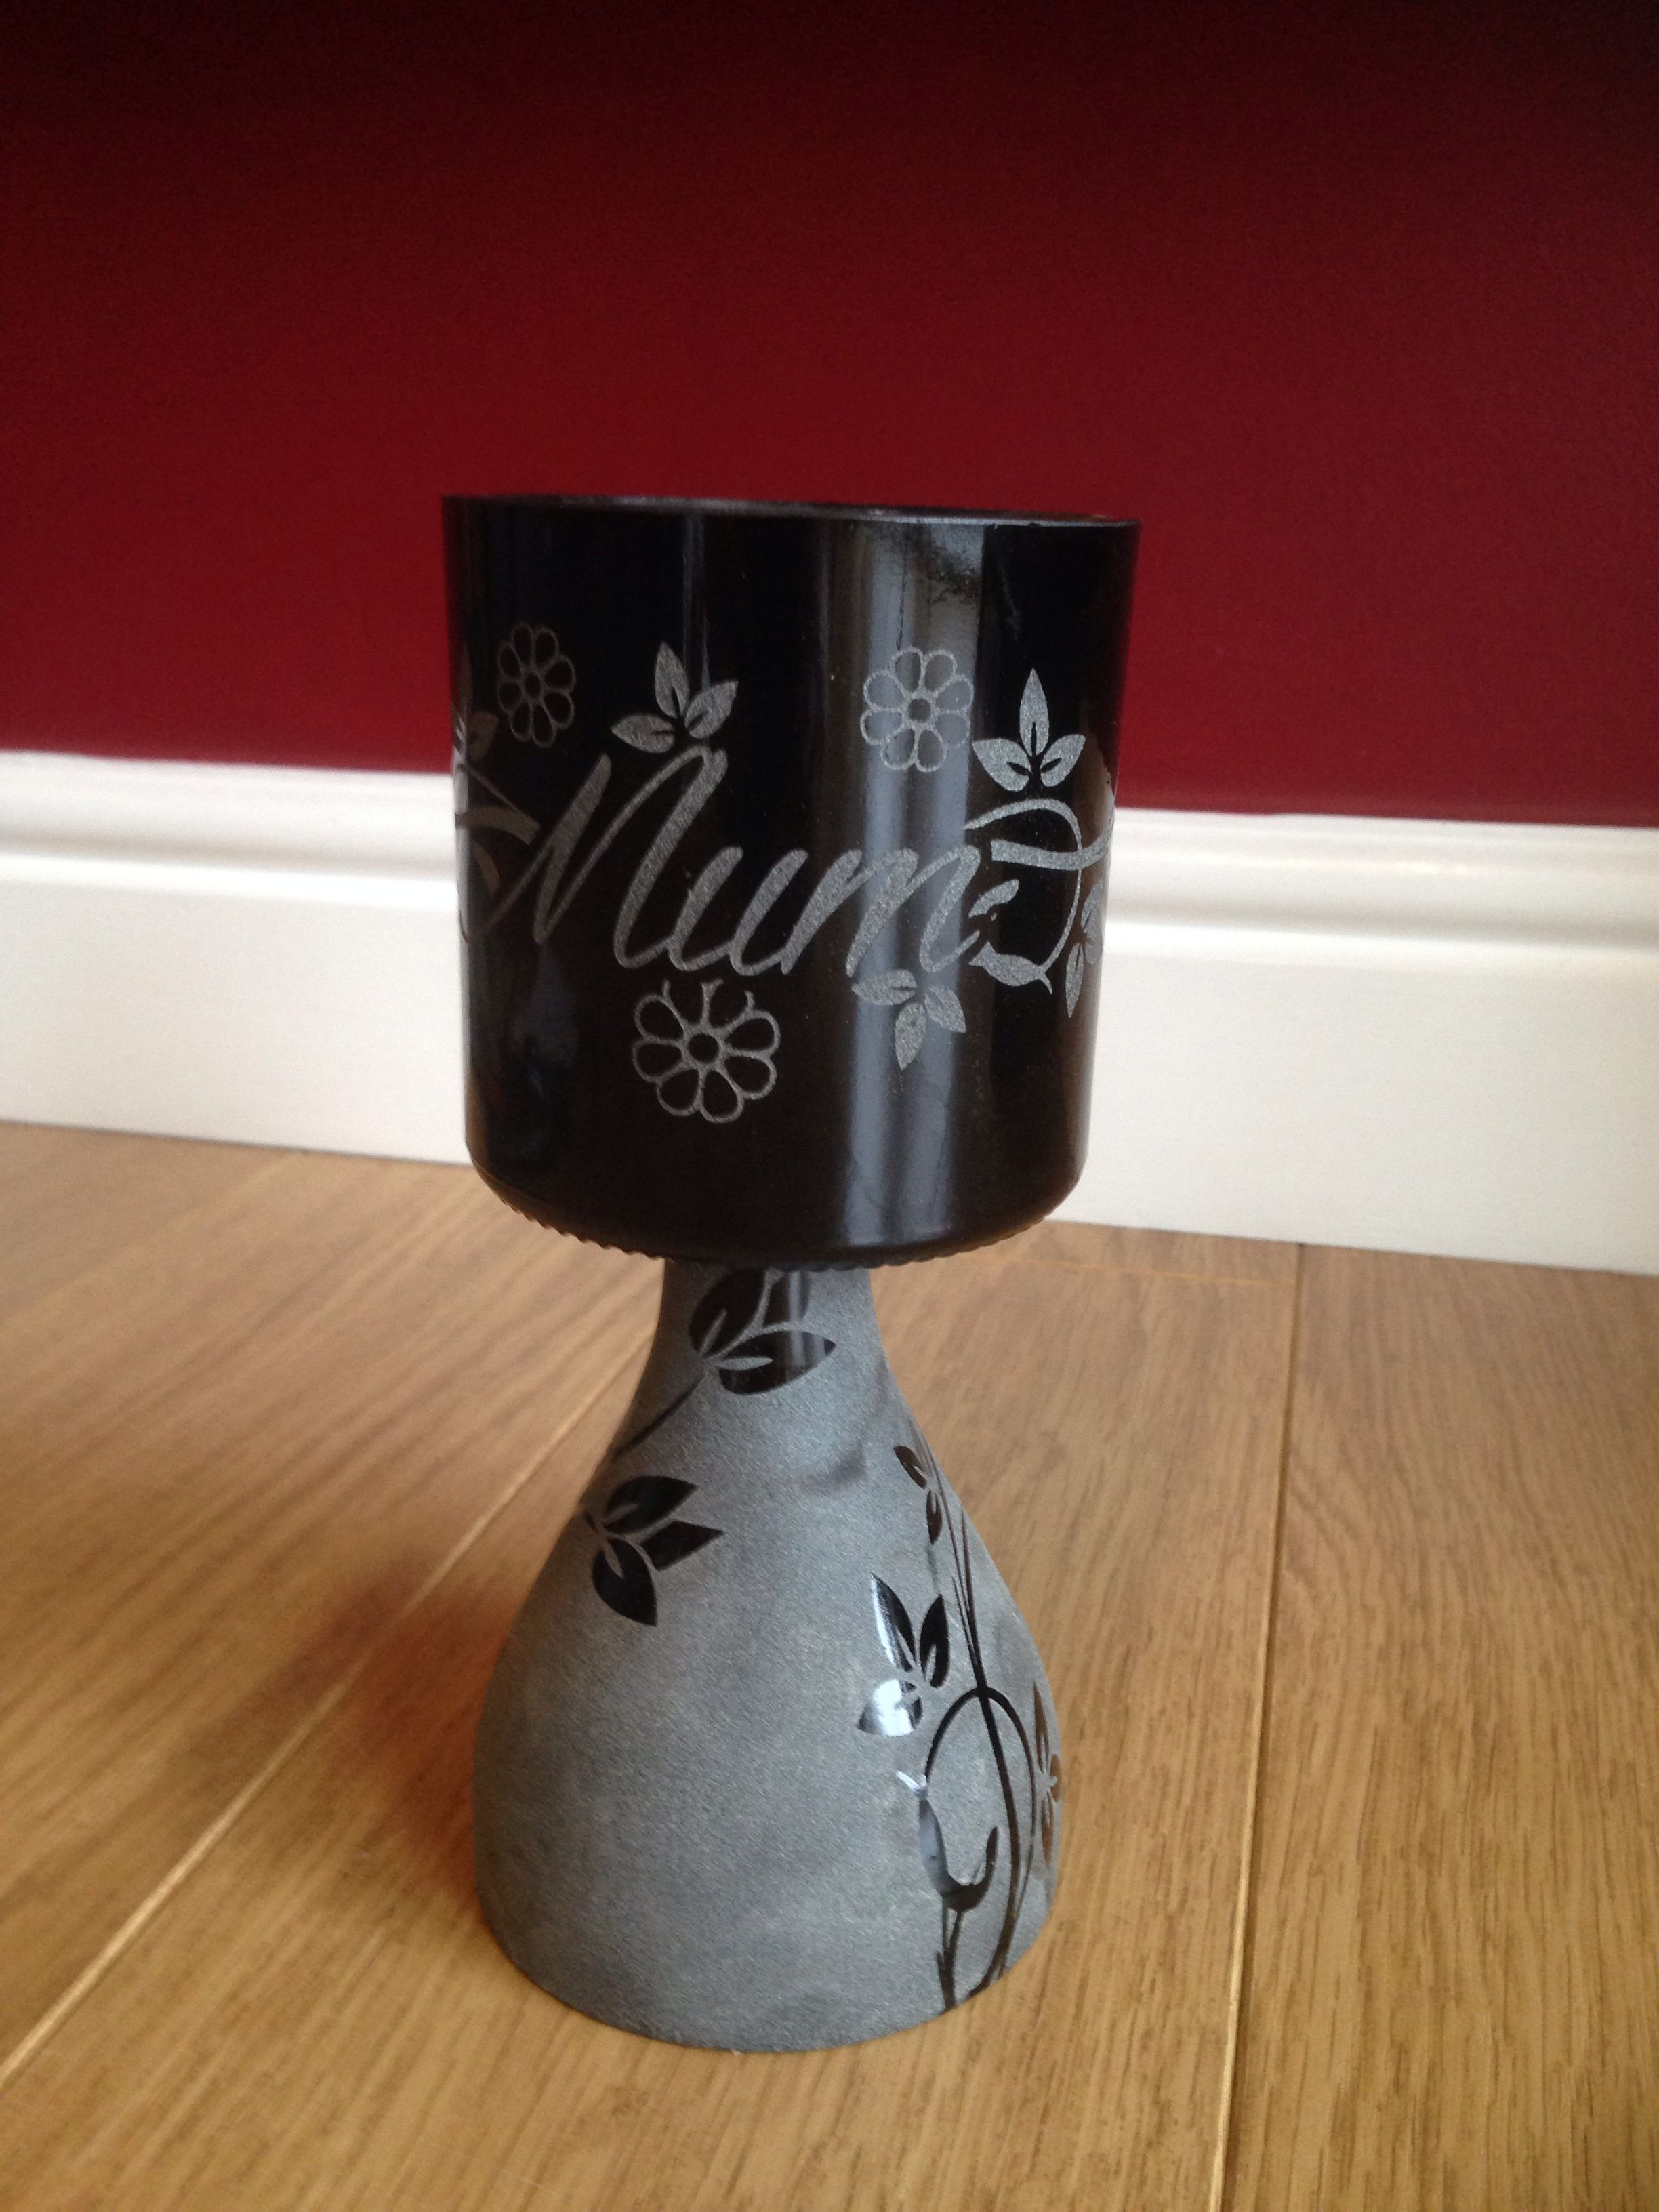 Mother S Day Irish Mist Bottle Candle Holder Etched With A Mum Floral Design Bottle Candle Holder Wine Bottle Candles Wine Bottle Crafts